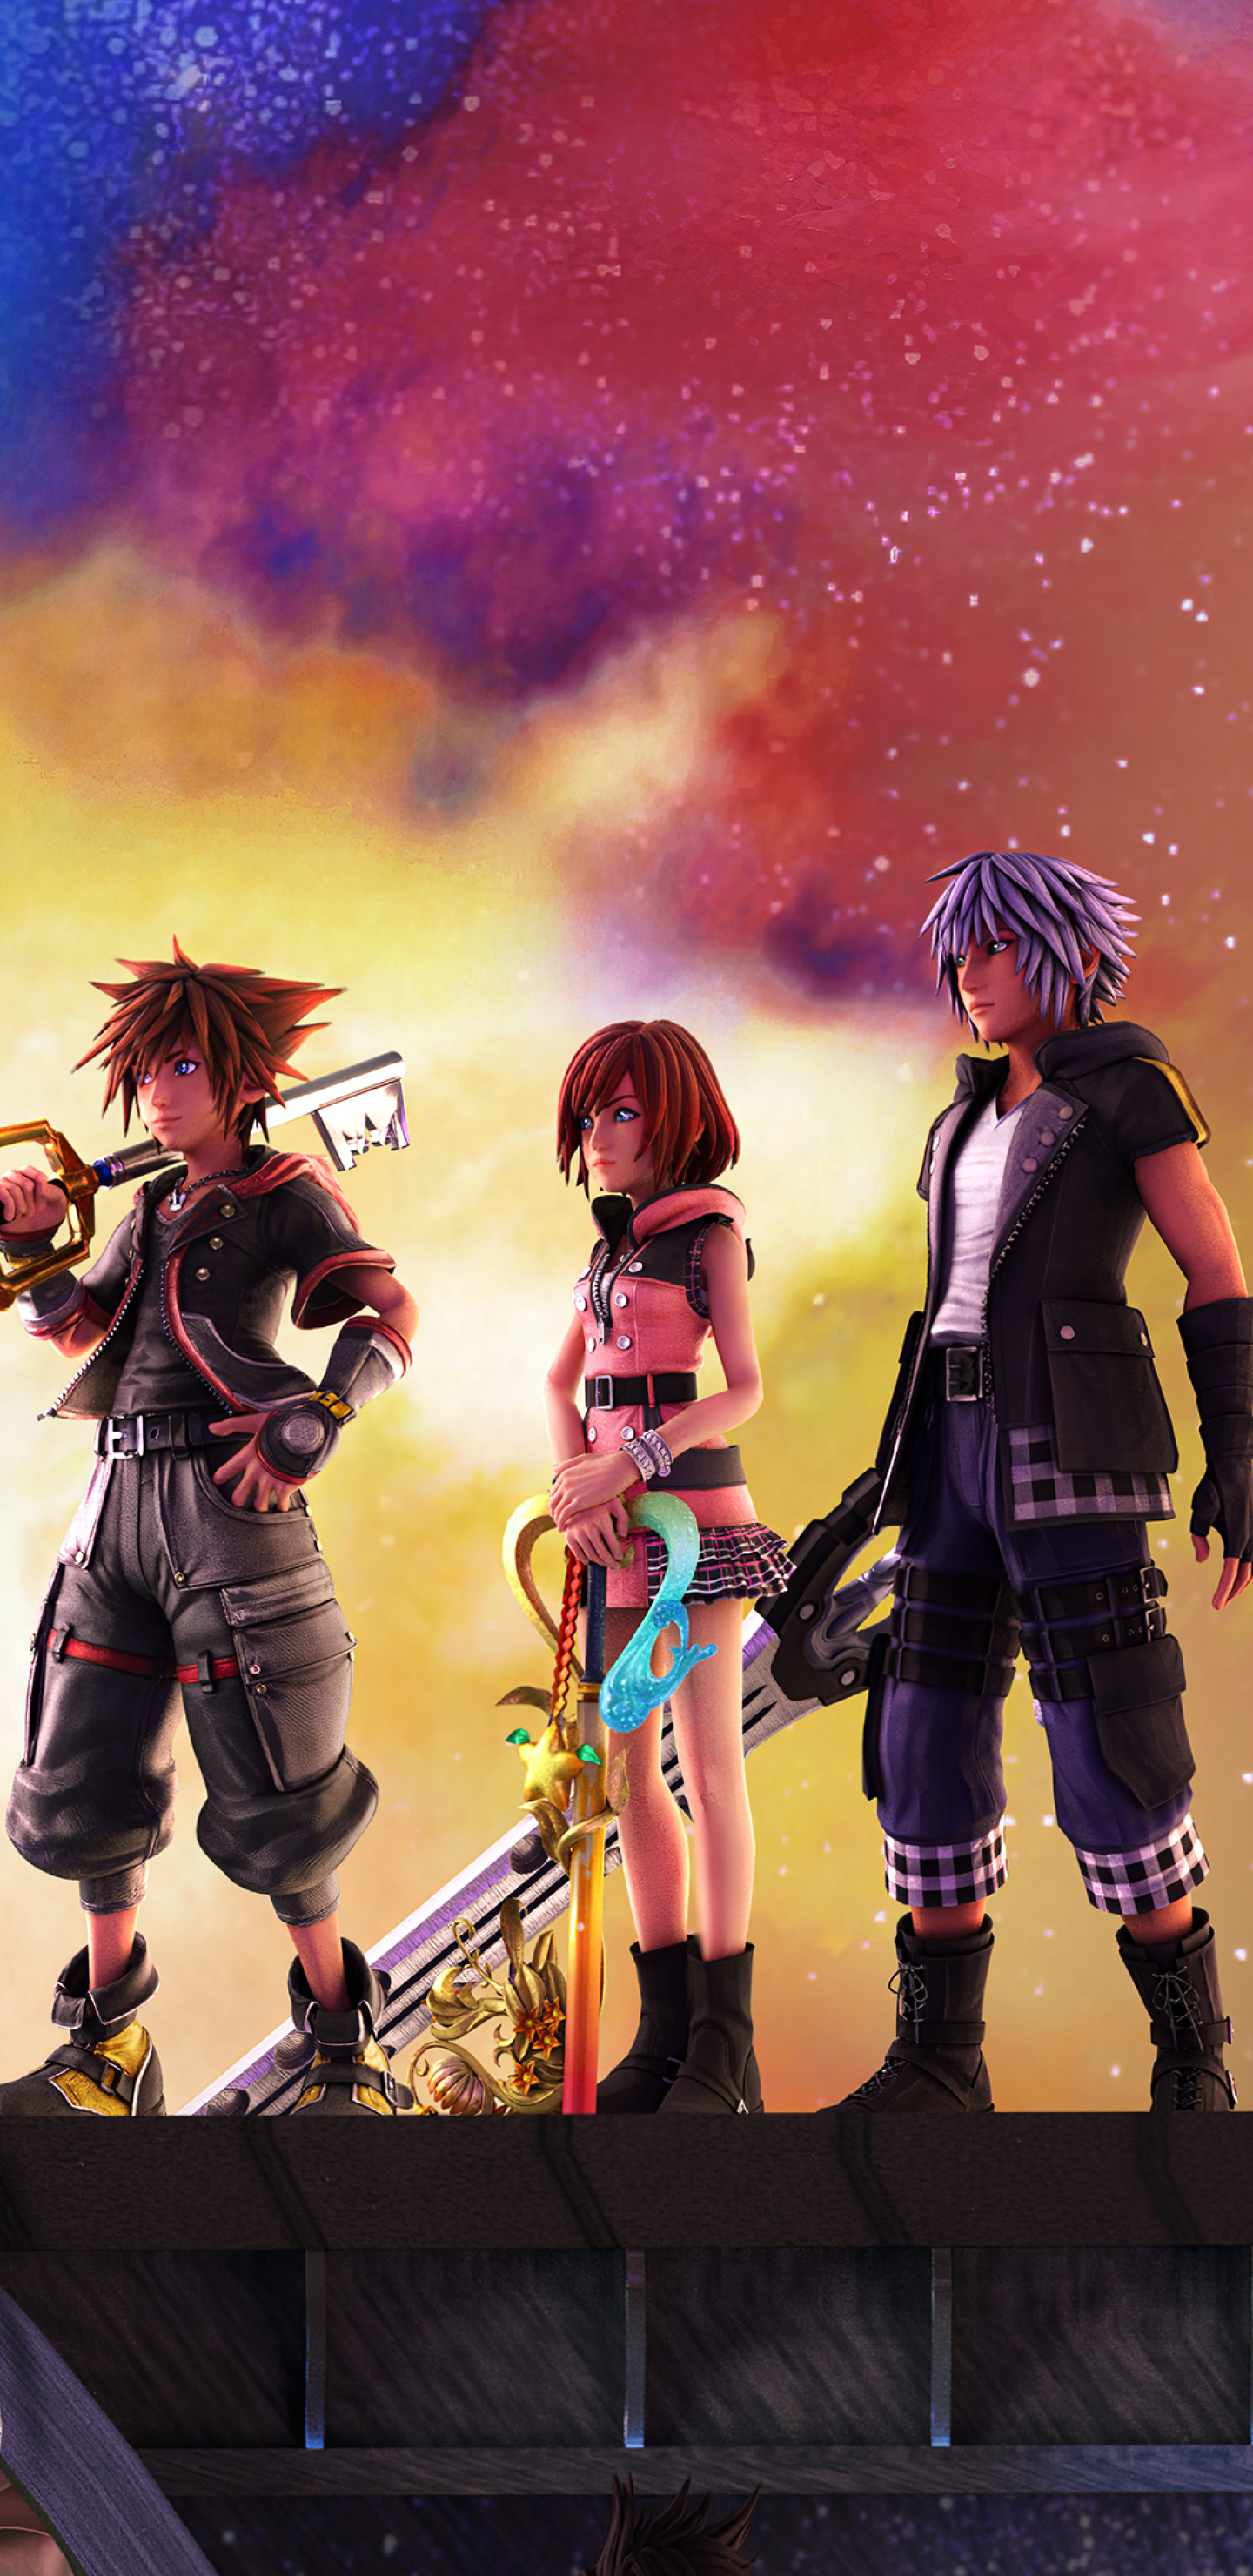 1440x2960 Kingdom Hearts 3 Samsung Galaxy Note 9 8 S9 S8 S8 Qhd